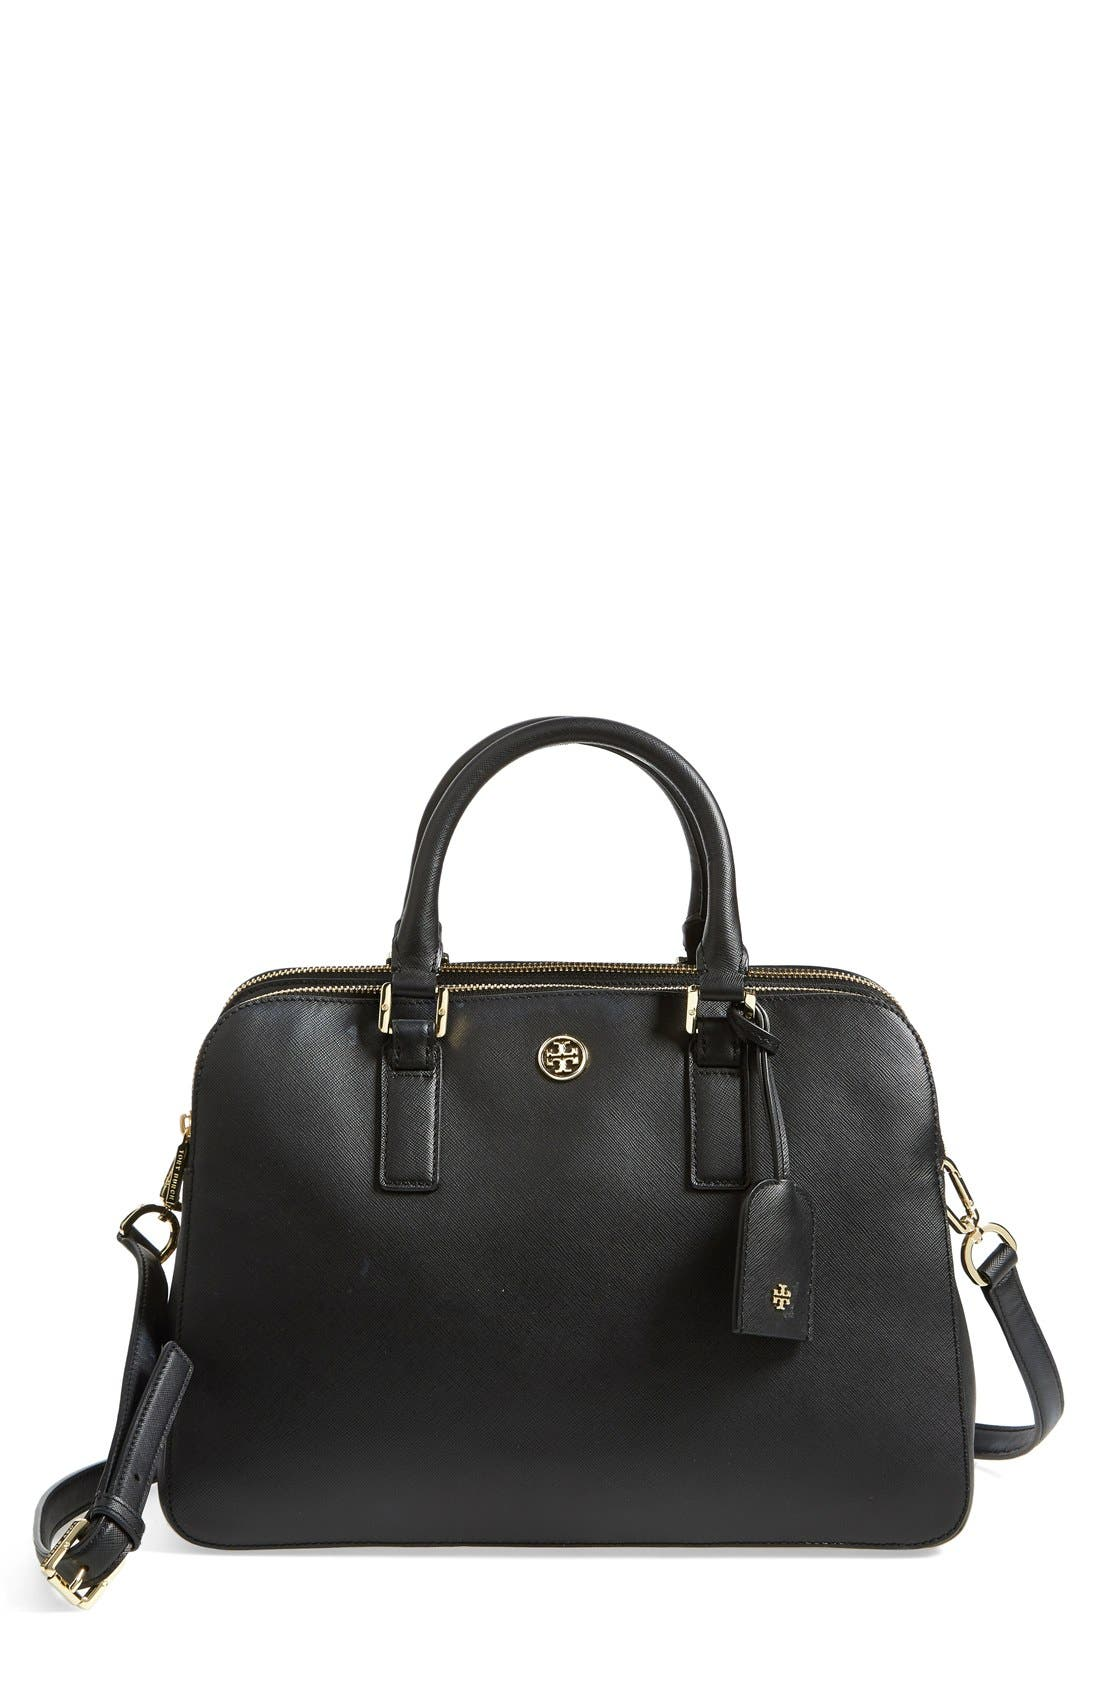 'Robinson' Triple Zip Saffiano Leather Satchel,                         Main,                         color, Black